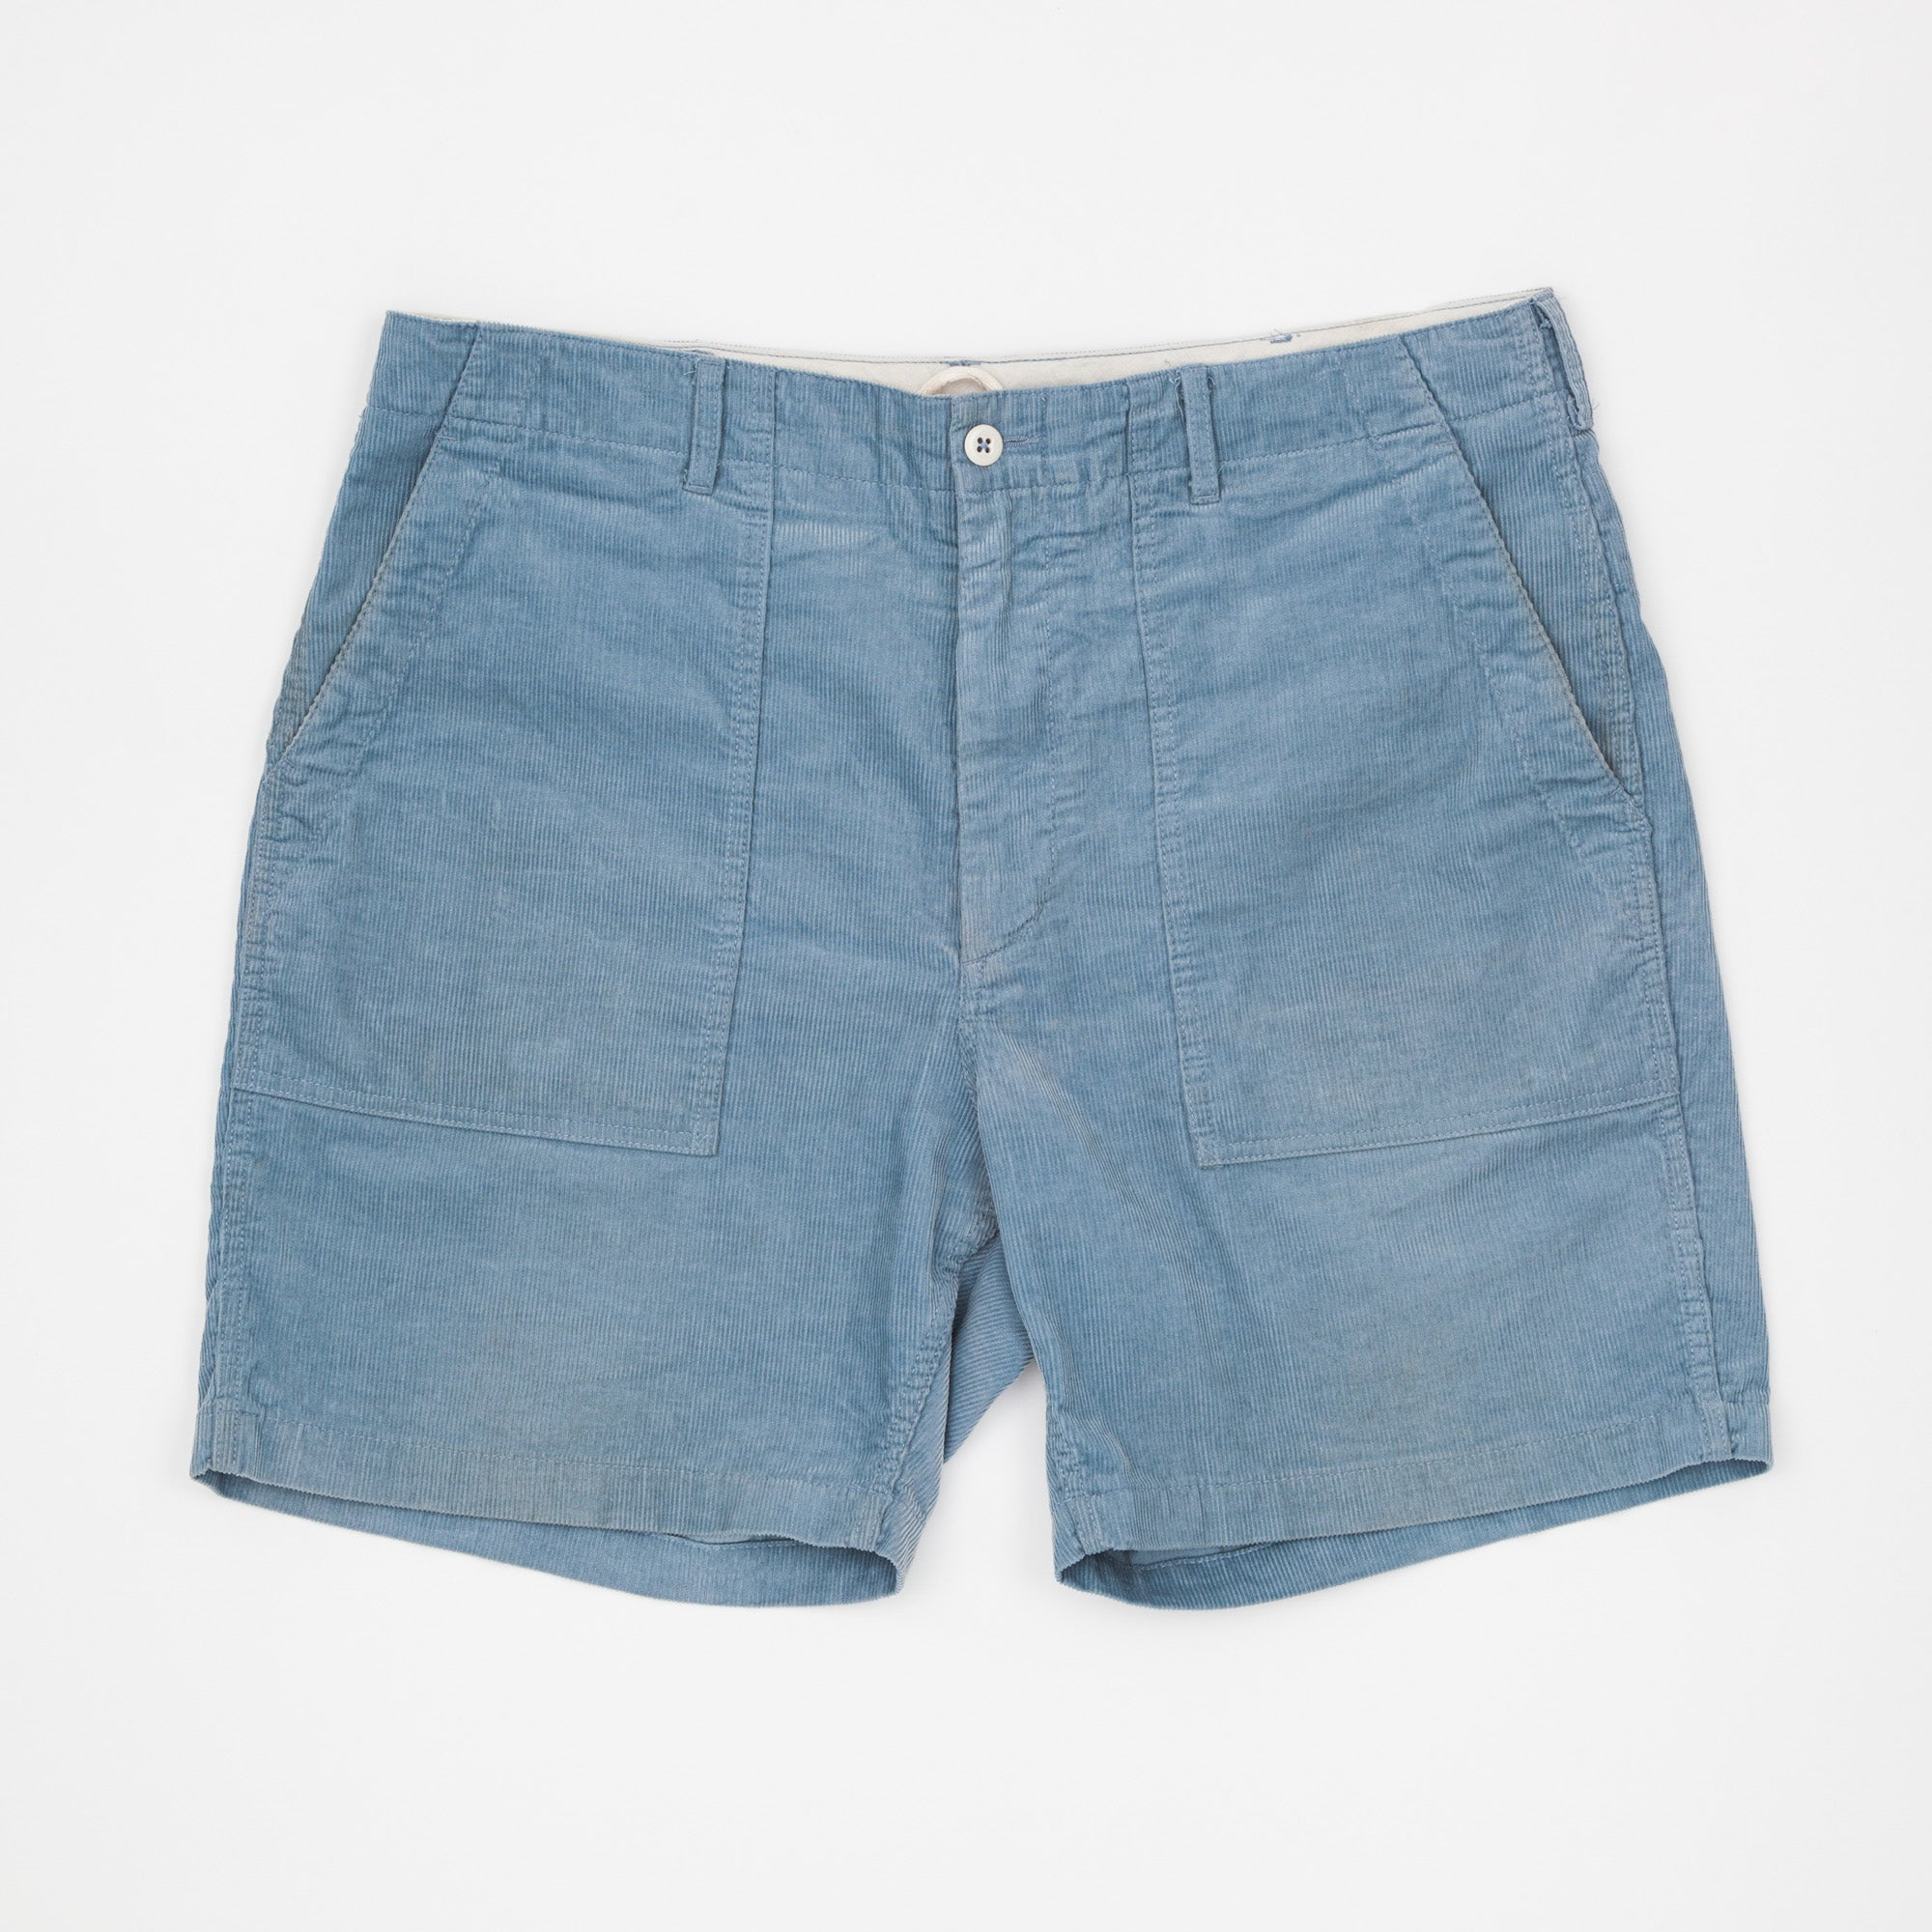 14W Cord Fatigue Shorts